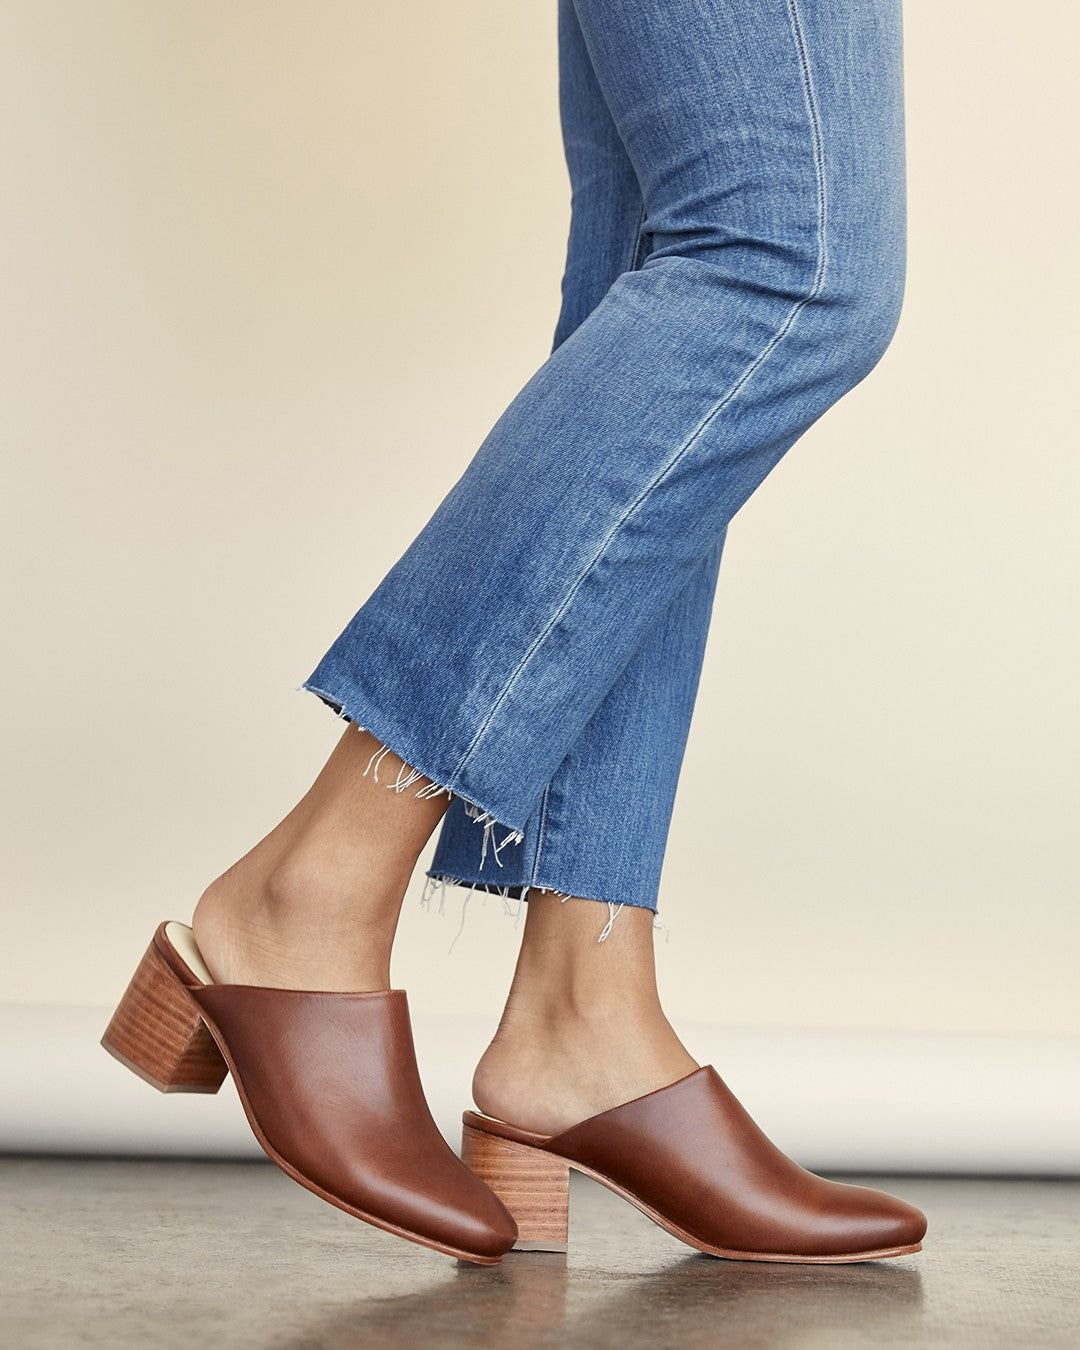 Nisolo women's Paloma Mule in brandy   Ethically Made